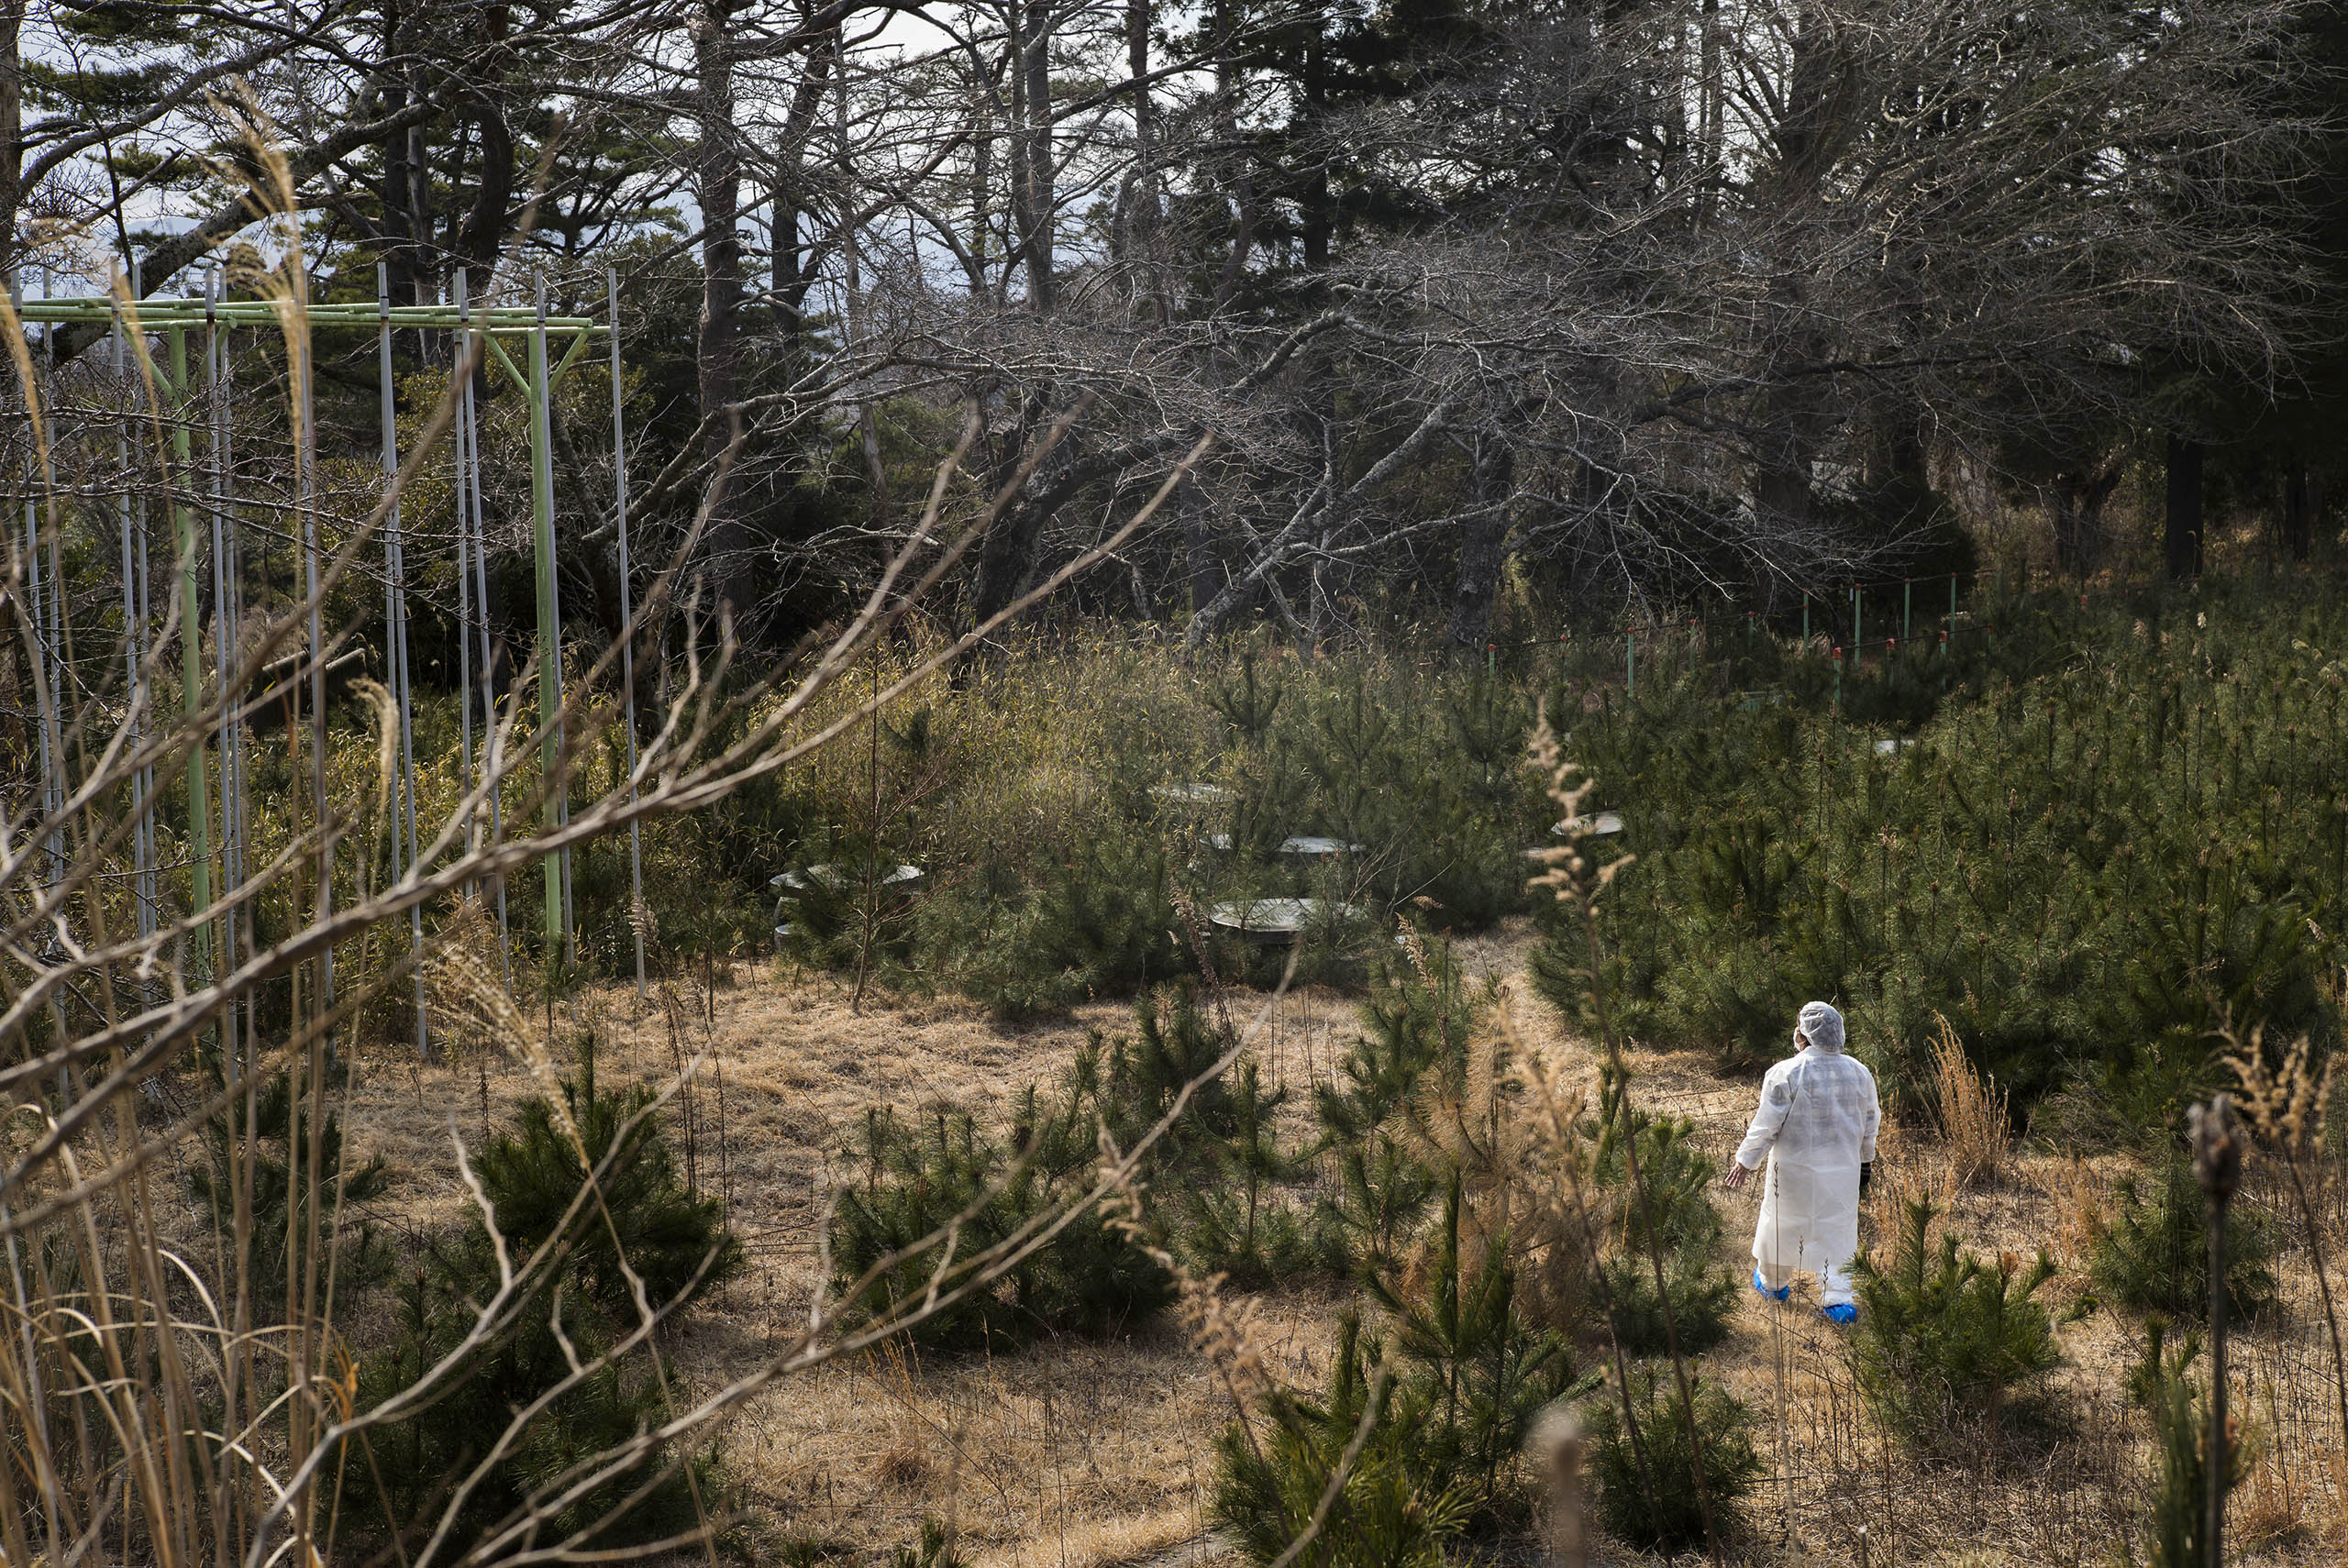 Terumi Murakami, a 43-year-old mother of three children and an evacuee from Okuma, about 5km from Fukushima Daiichi nuclear power plant, walks through her children's highly contaminated and abandoned Kumano Elementary School grounds in Okuma, Japan, March 4, 2016. The school lies within the 5km exclusion zone around the crippled nuclear power plant.